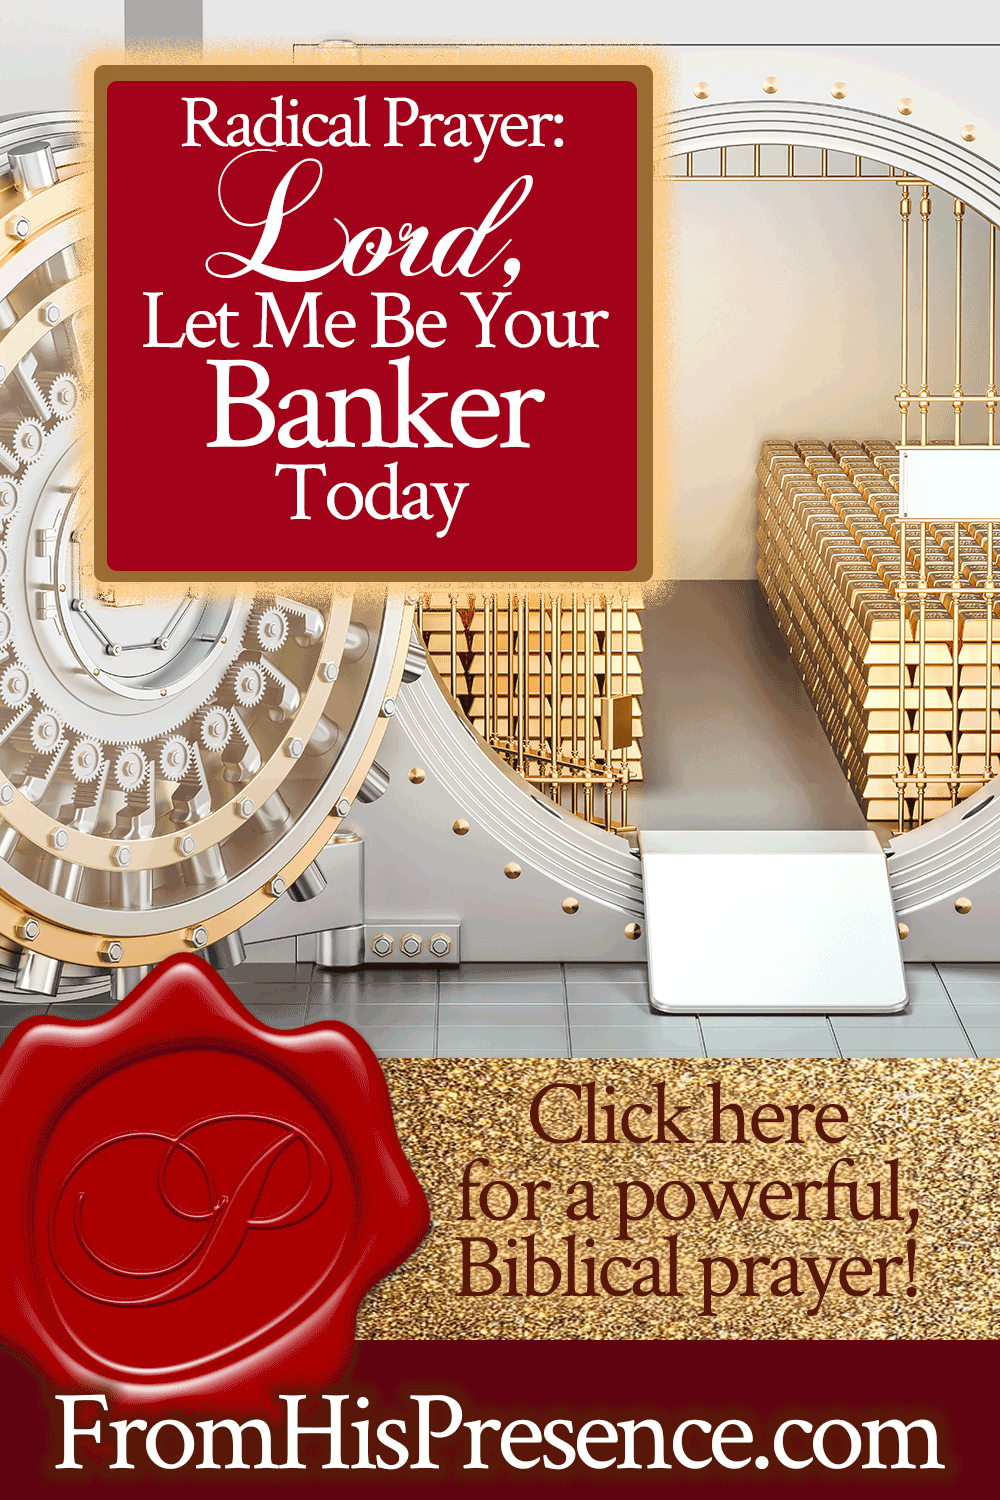 Radical Prayer: Lord, Let Me Be Your Banker Today   by Jamie Rohrbaugh   FromHisPresence.com